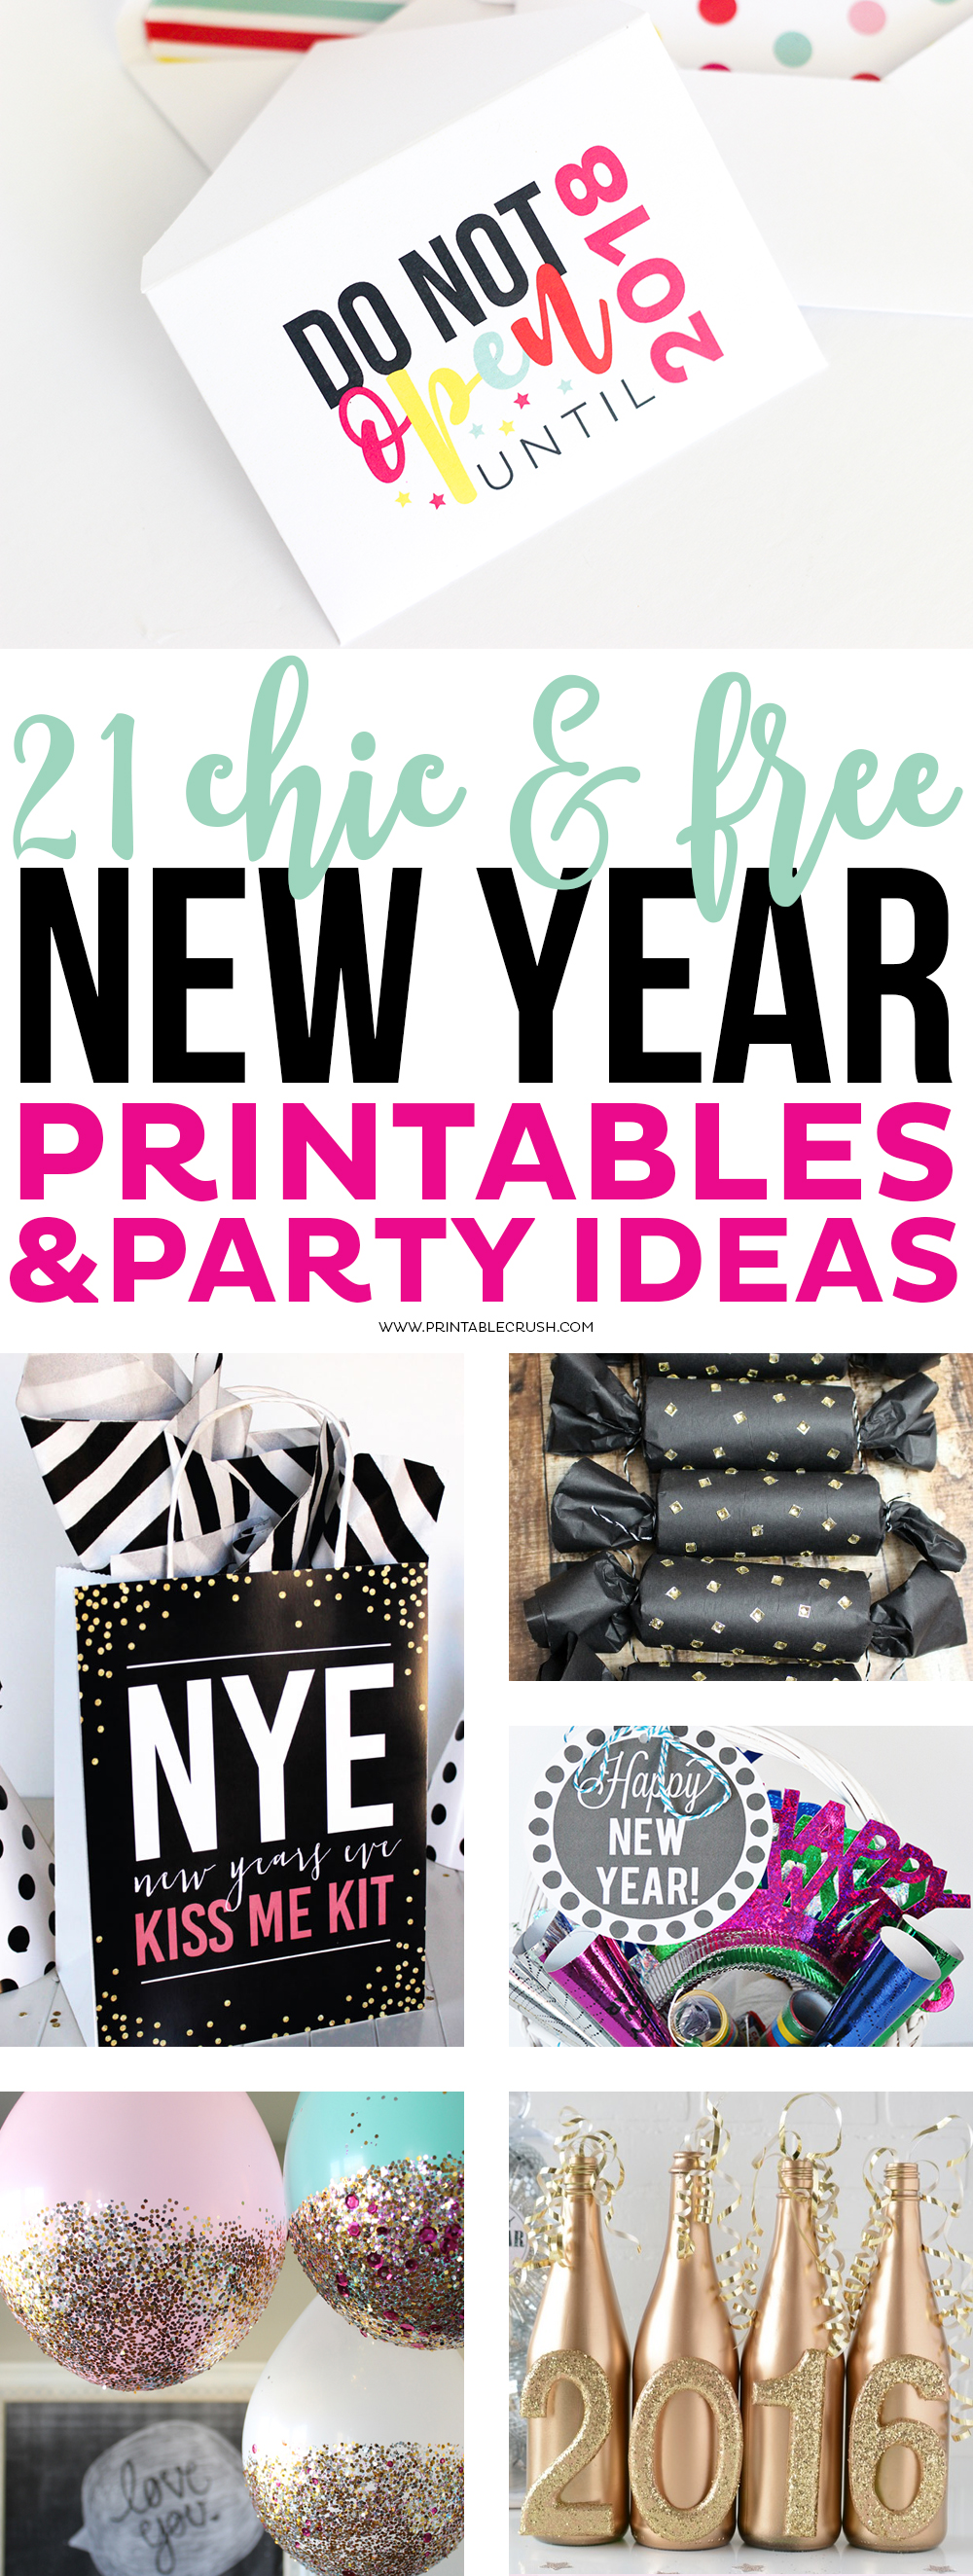 I have rounded up 21 Chic and FREE New Year Printables and Party Decor Ideas! This includes everything you need for a fun and gorgeous party!